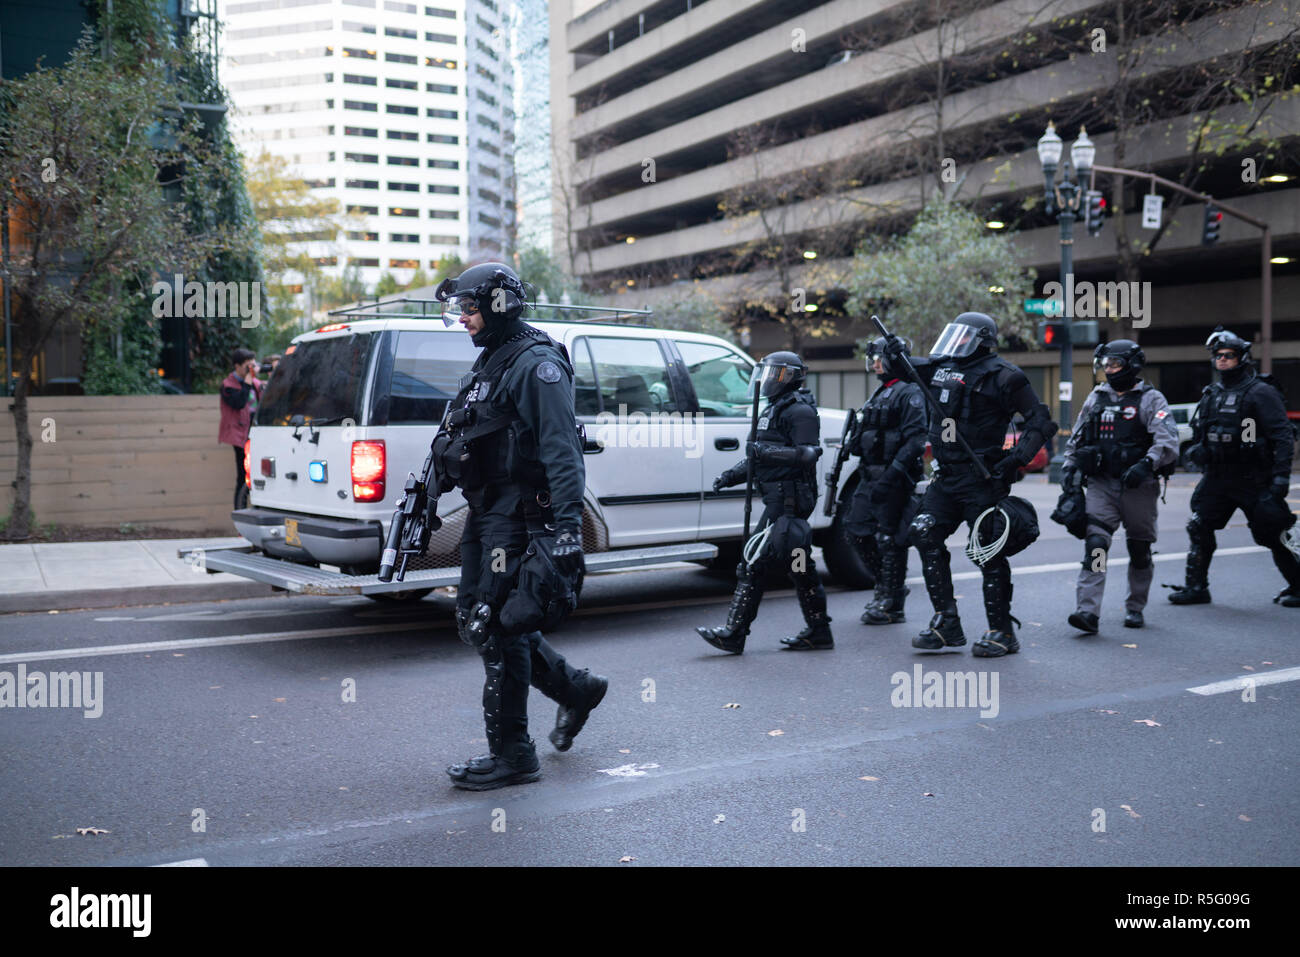 Portland, OR / USA - November 17 2018: Police in heavy riot gear during protest turned into civil disobedience. - Stock Image